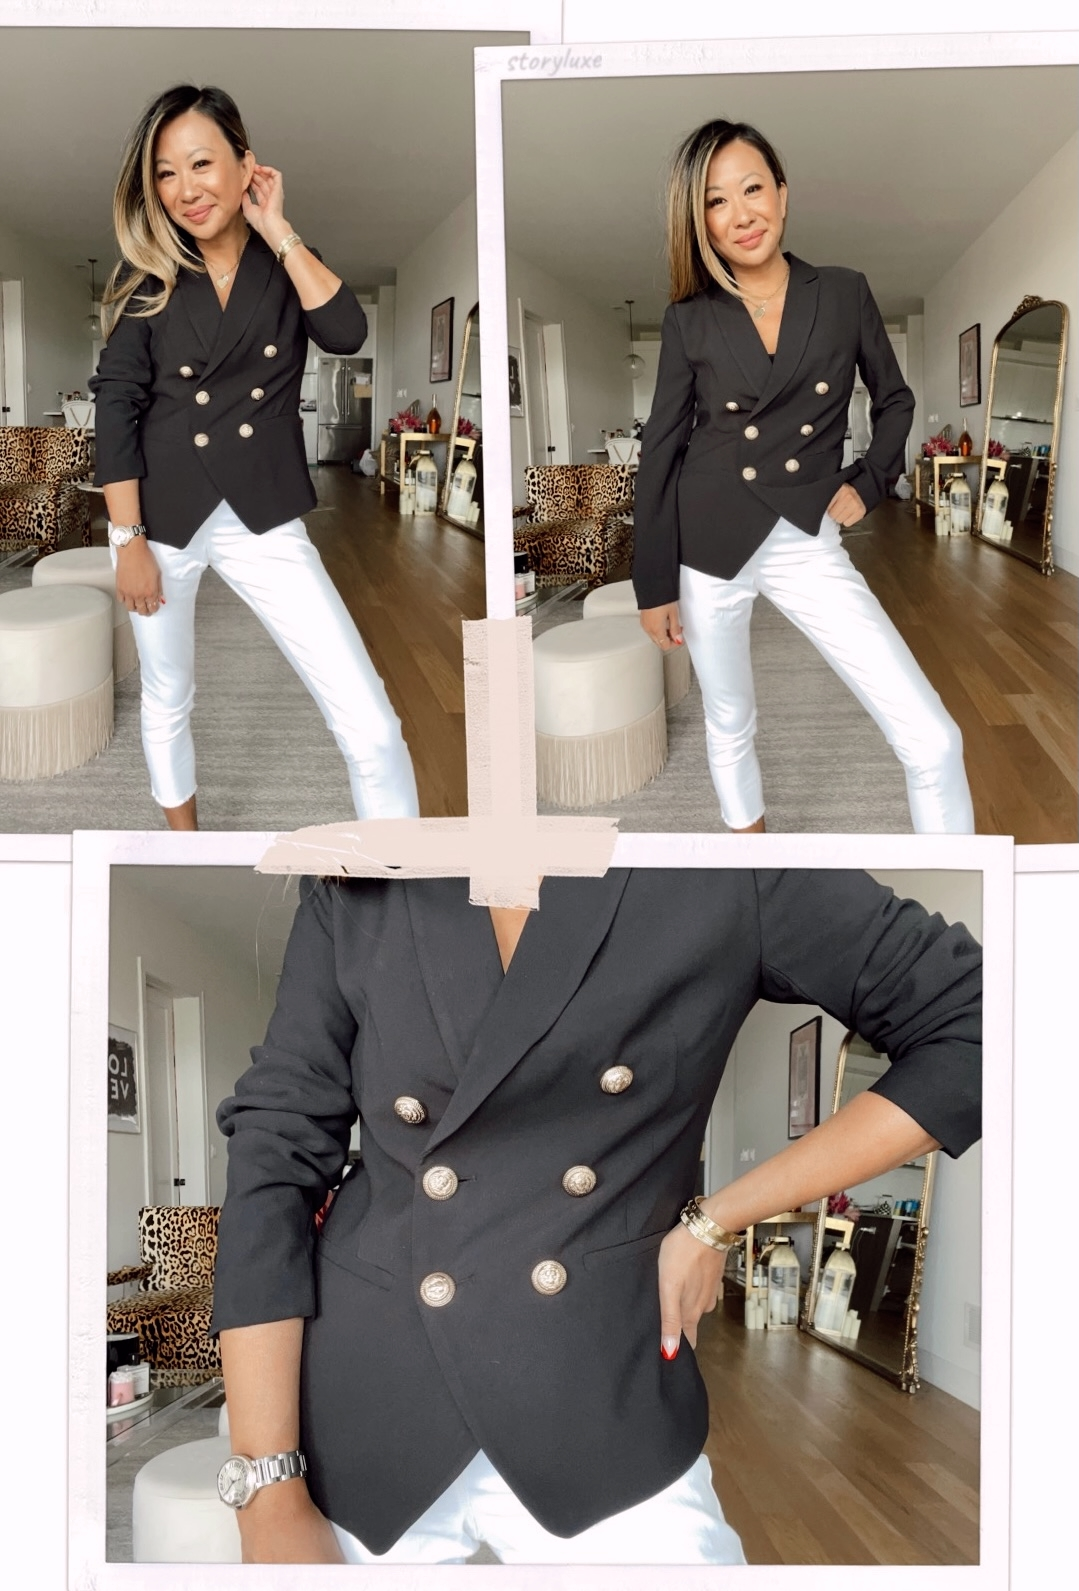 Scoop Women's Double Breasted Crepe Blazer, office outfit ideas, work outfit ideas, Walmart style, walmart blazer, walmart outfit ideas, what to wear to work